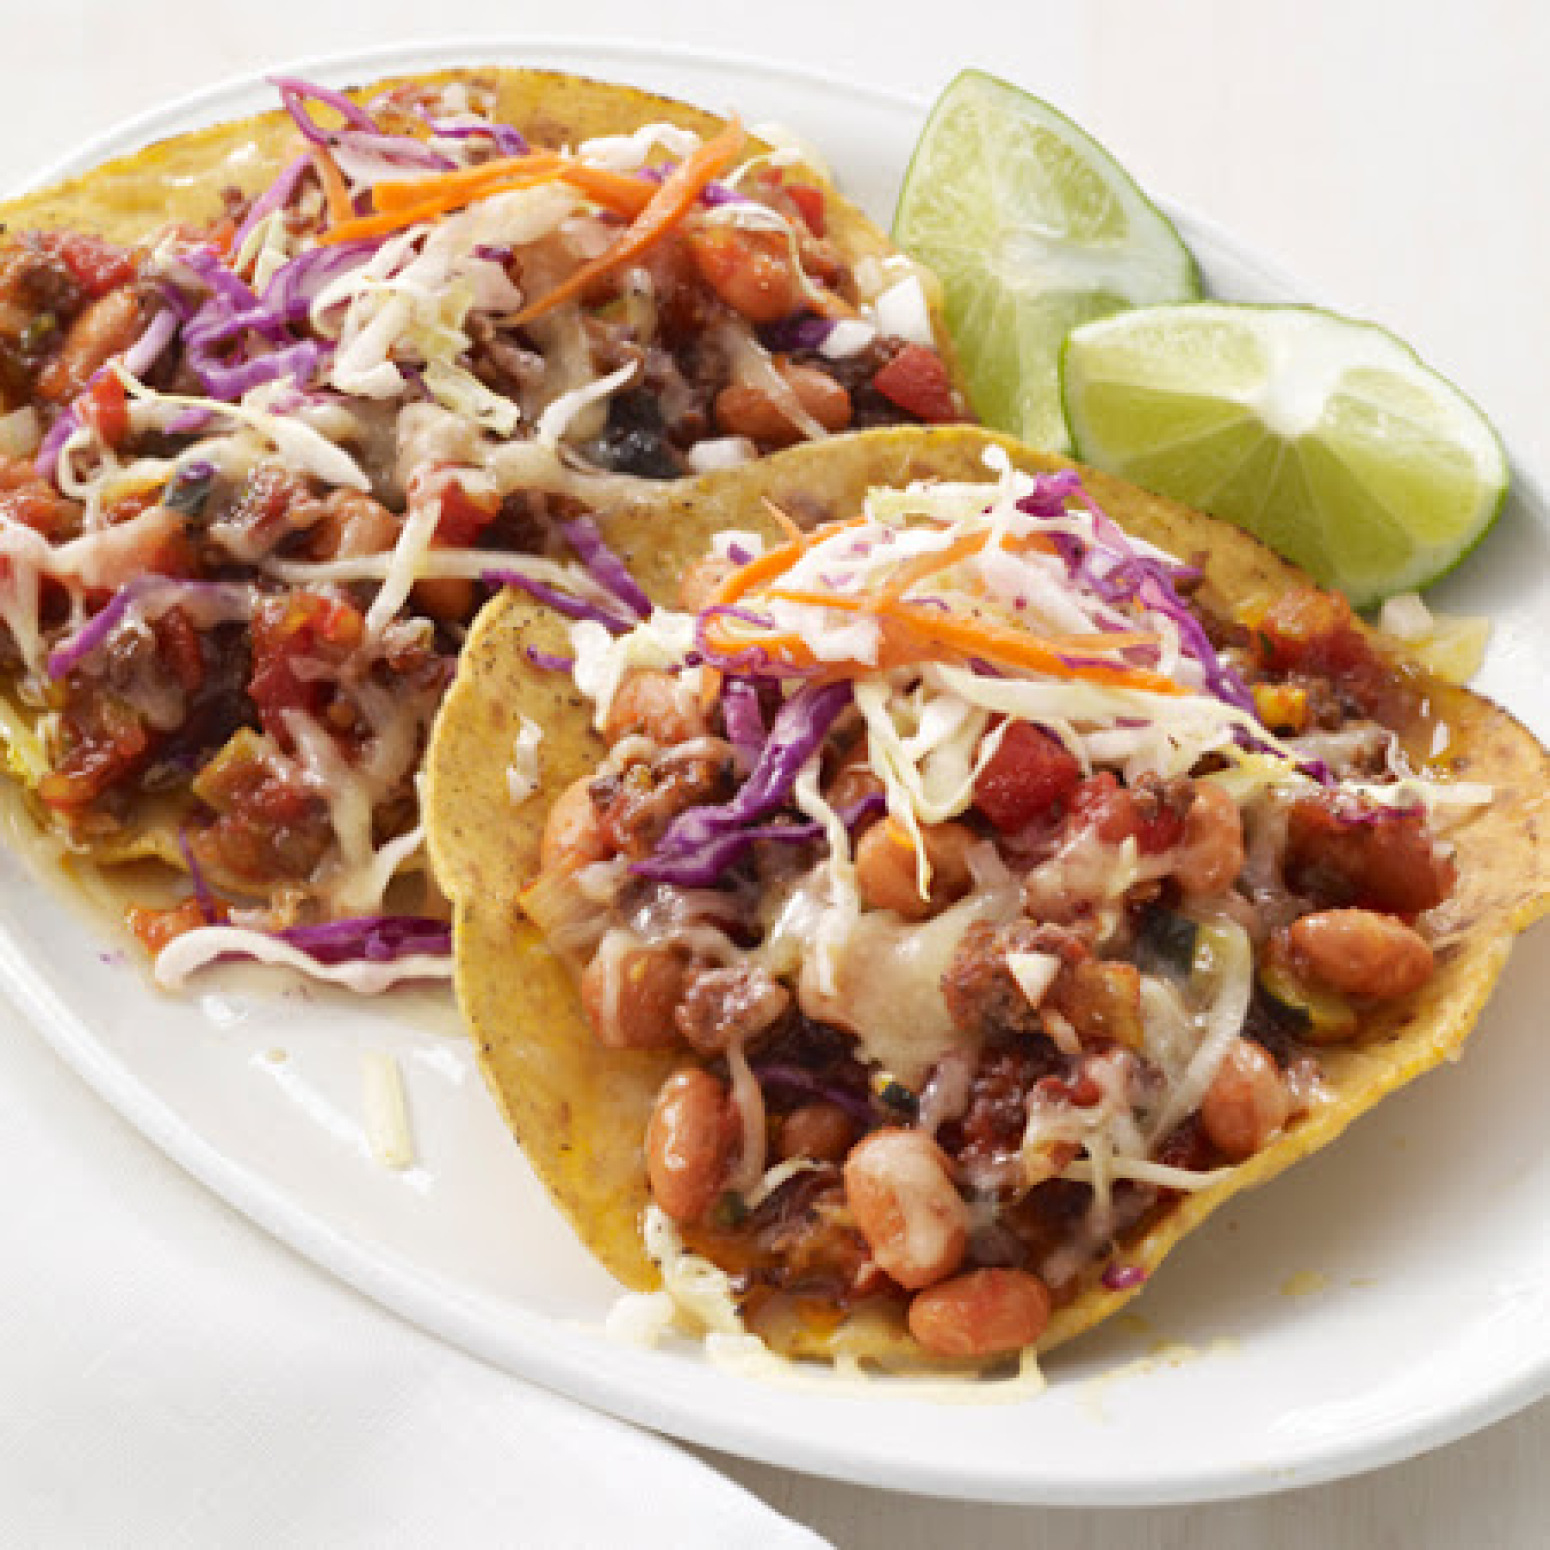 Chipotle Beef Tostadas Recipe 3 | Just A Pinch Recipes